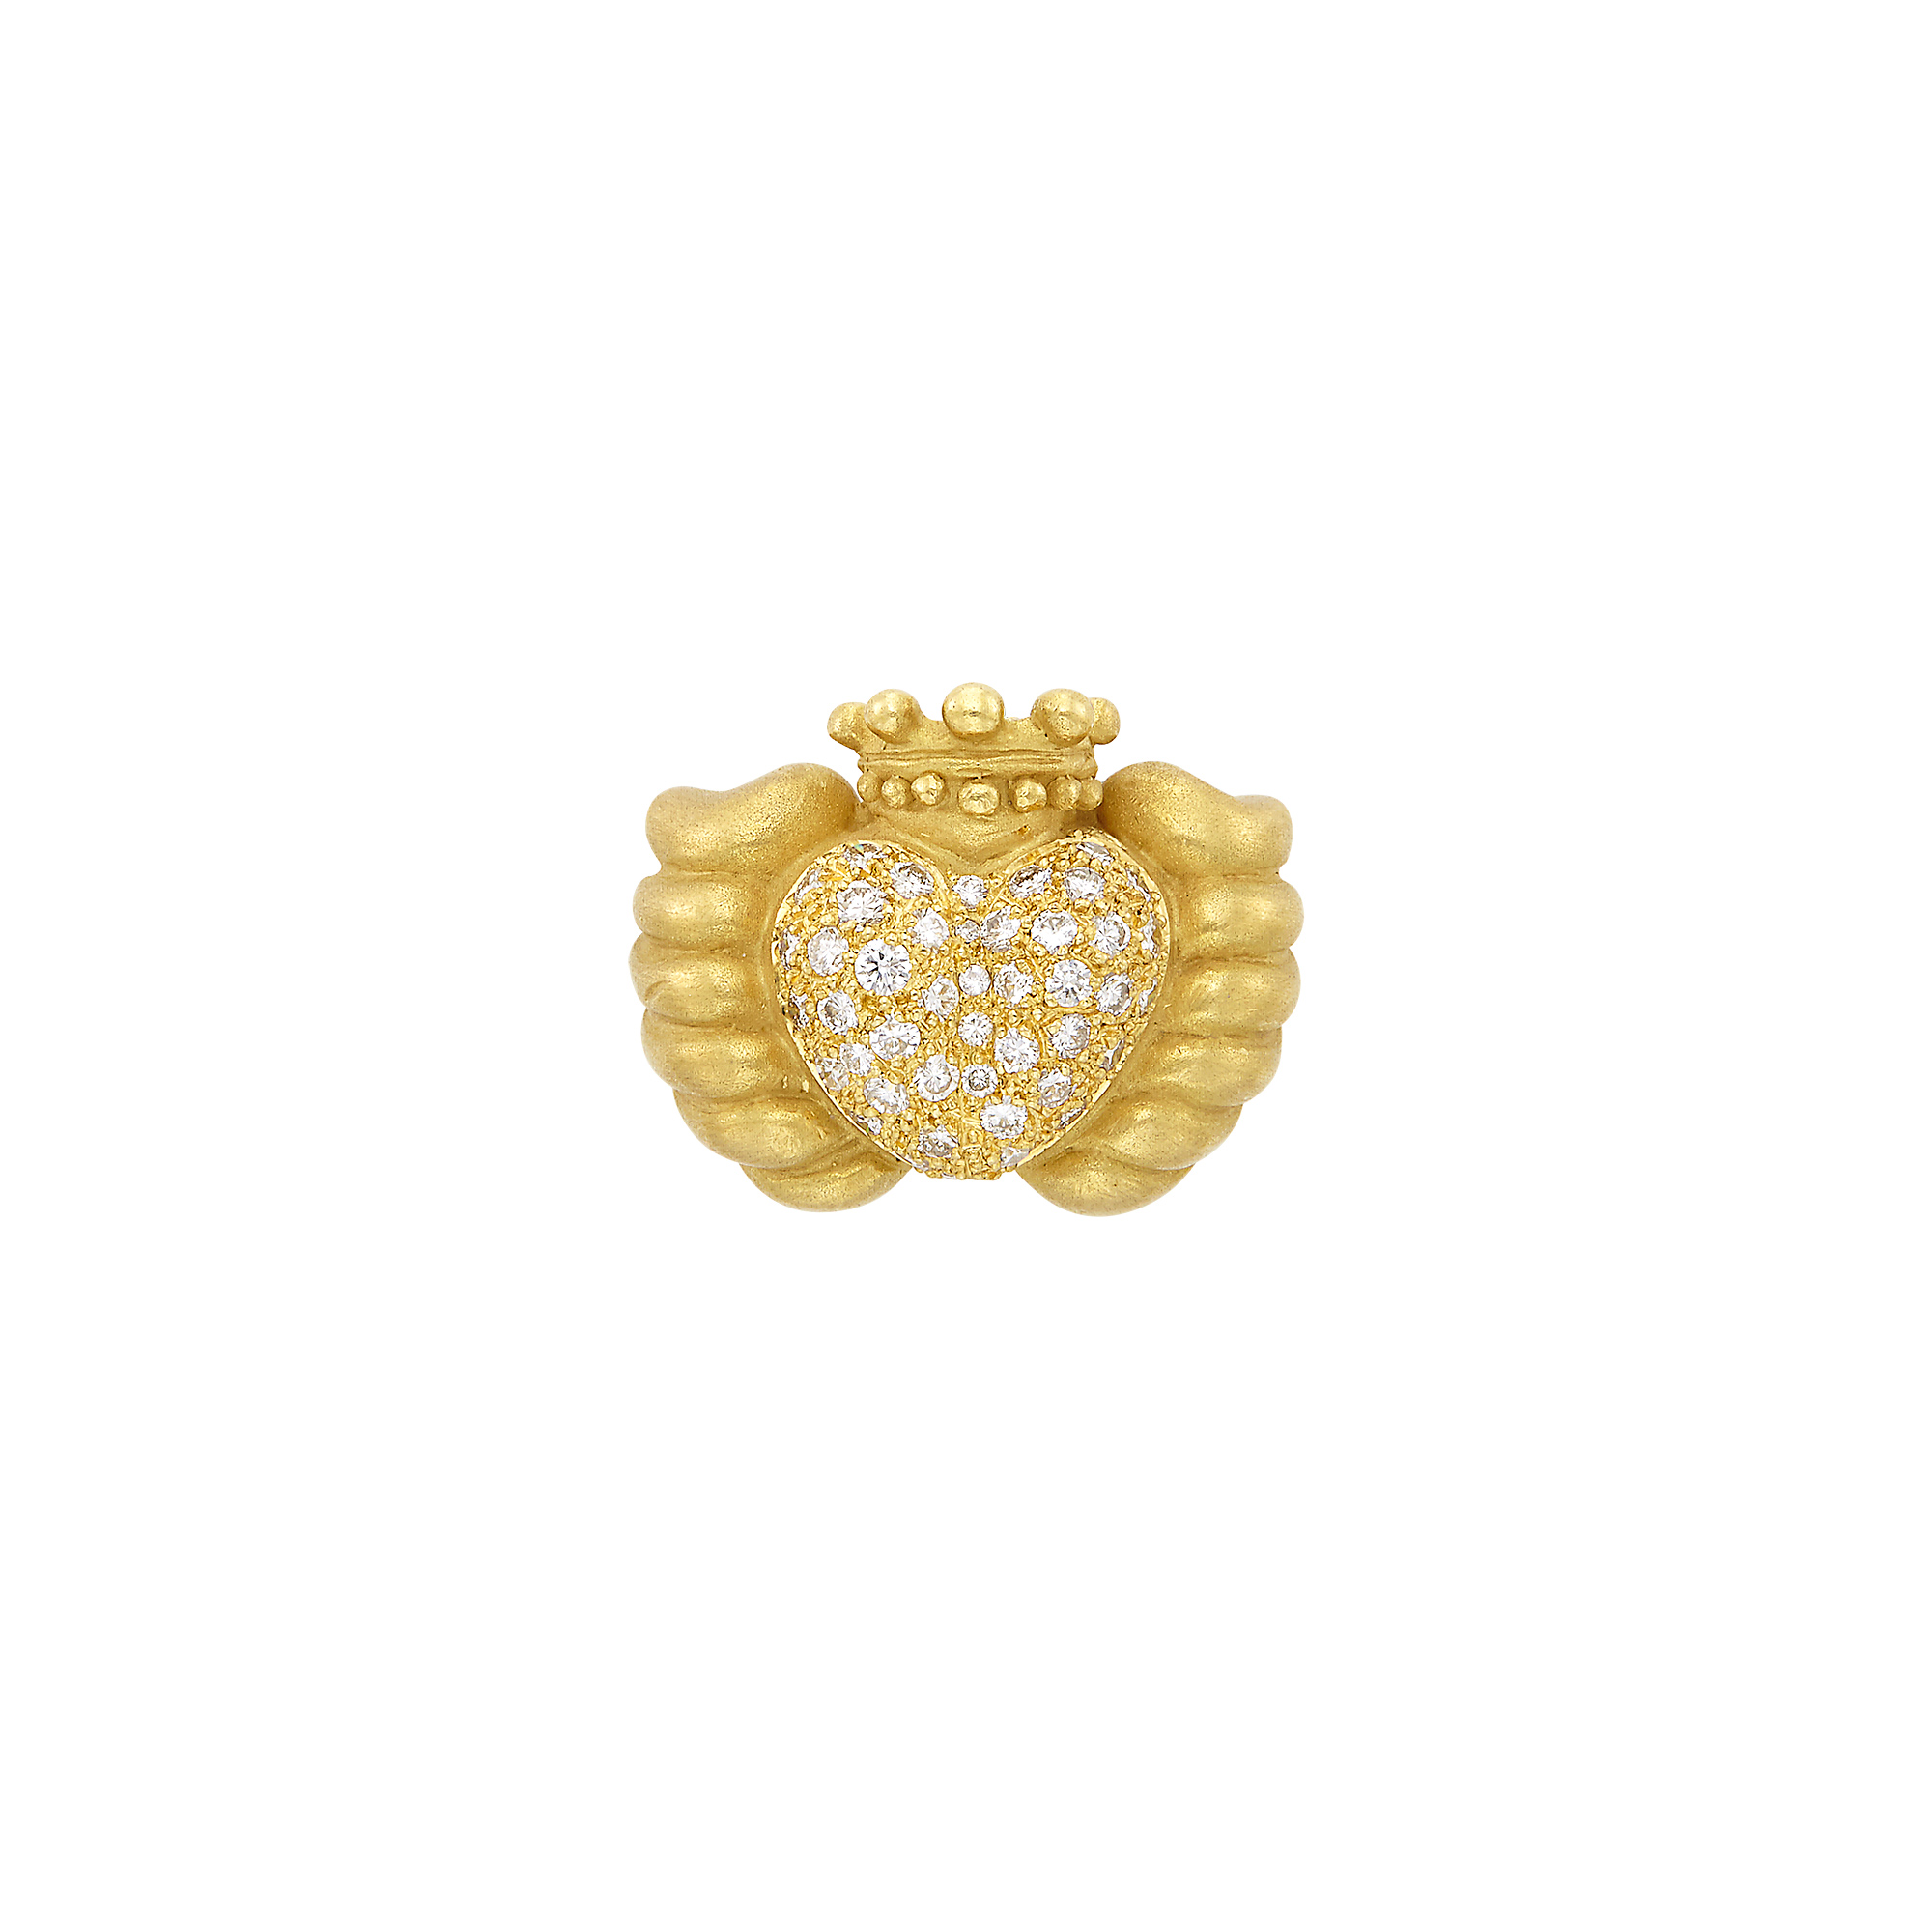 Lot image - Gold and Diamond Claddah Ring, Vahe Naltchayan